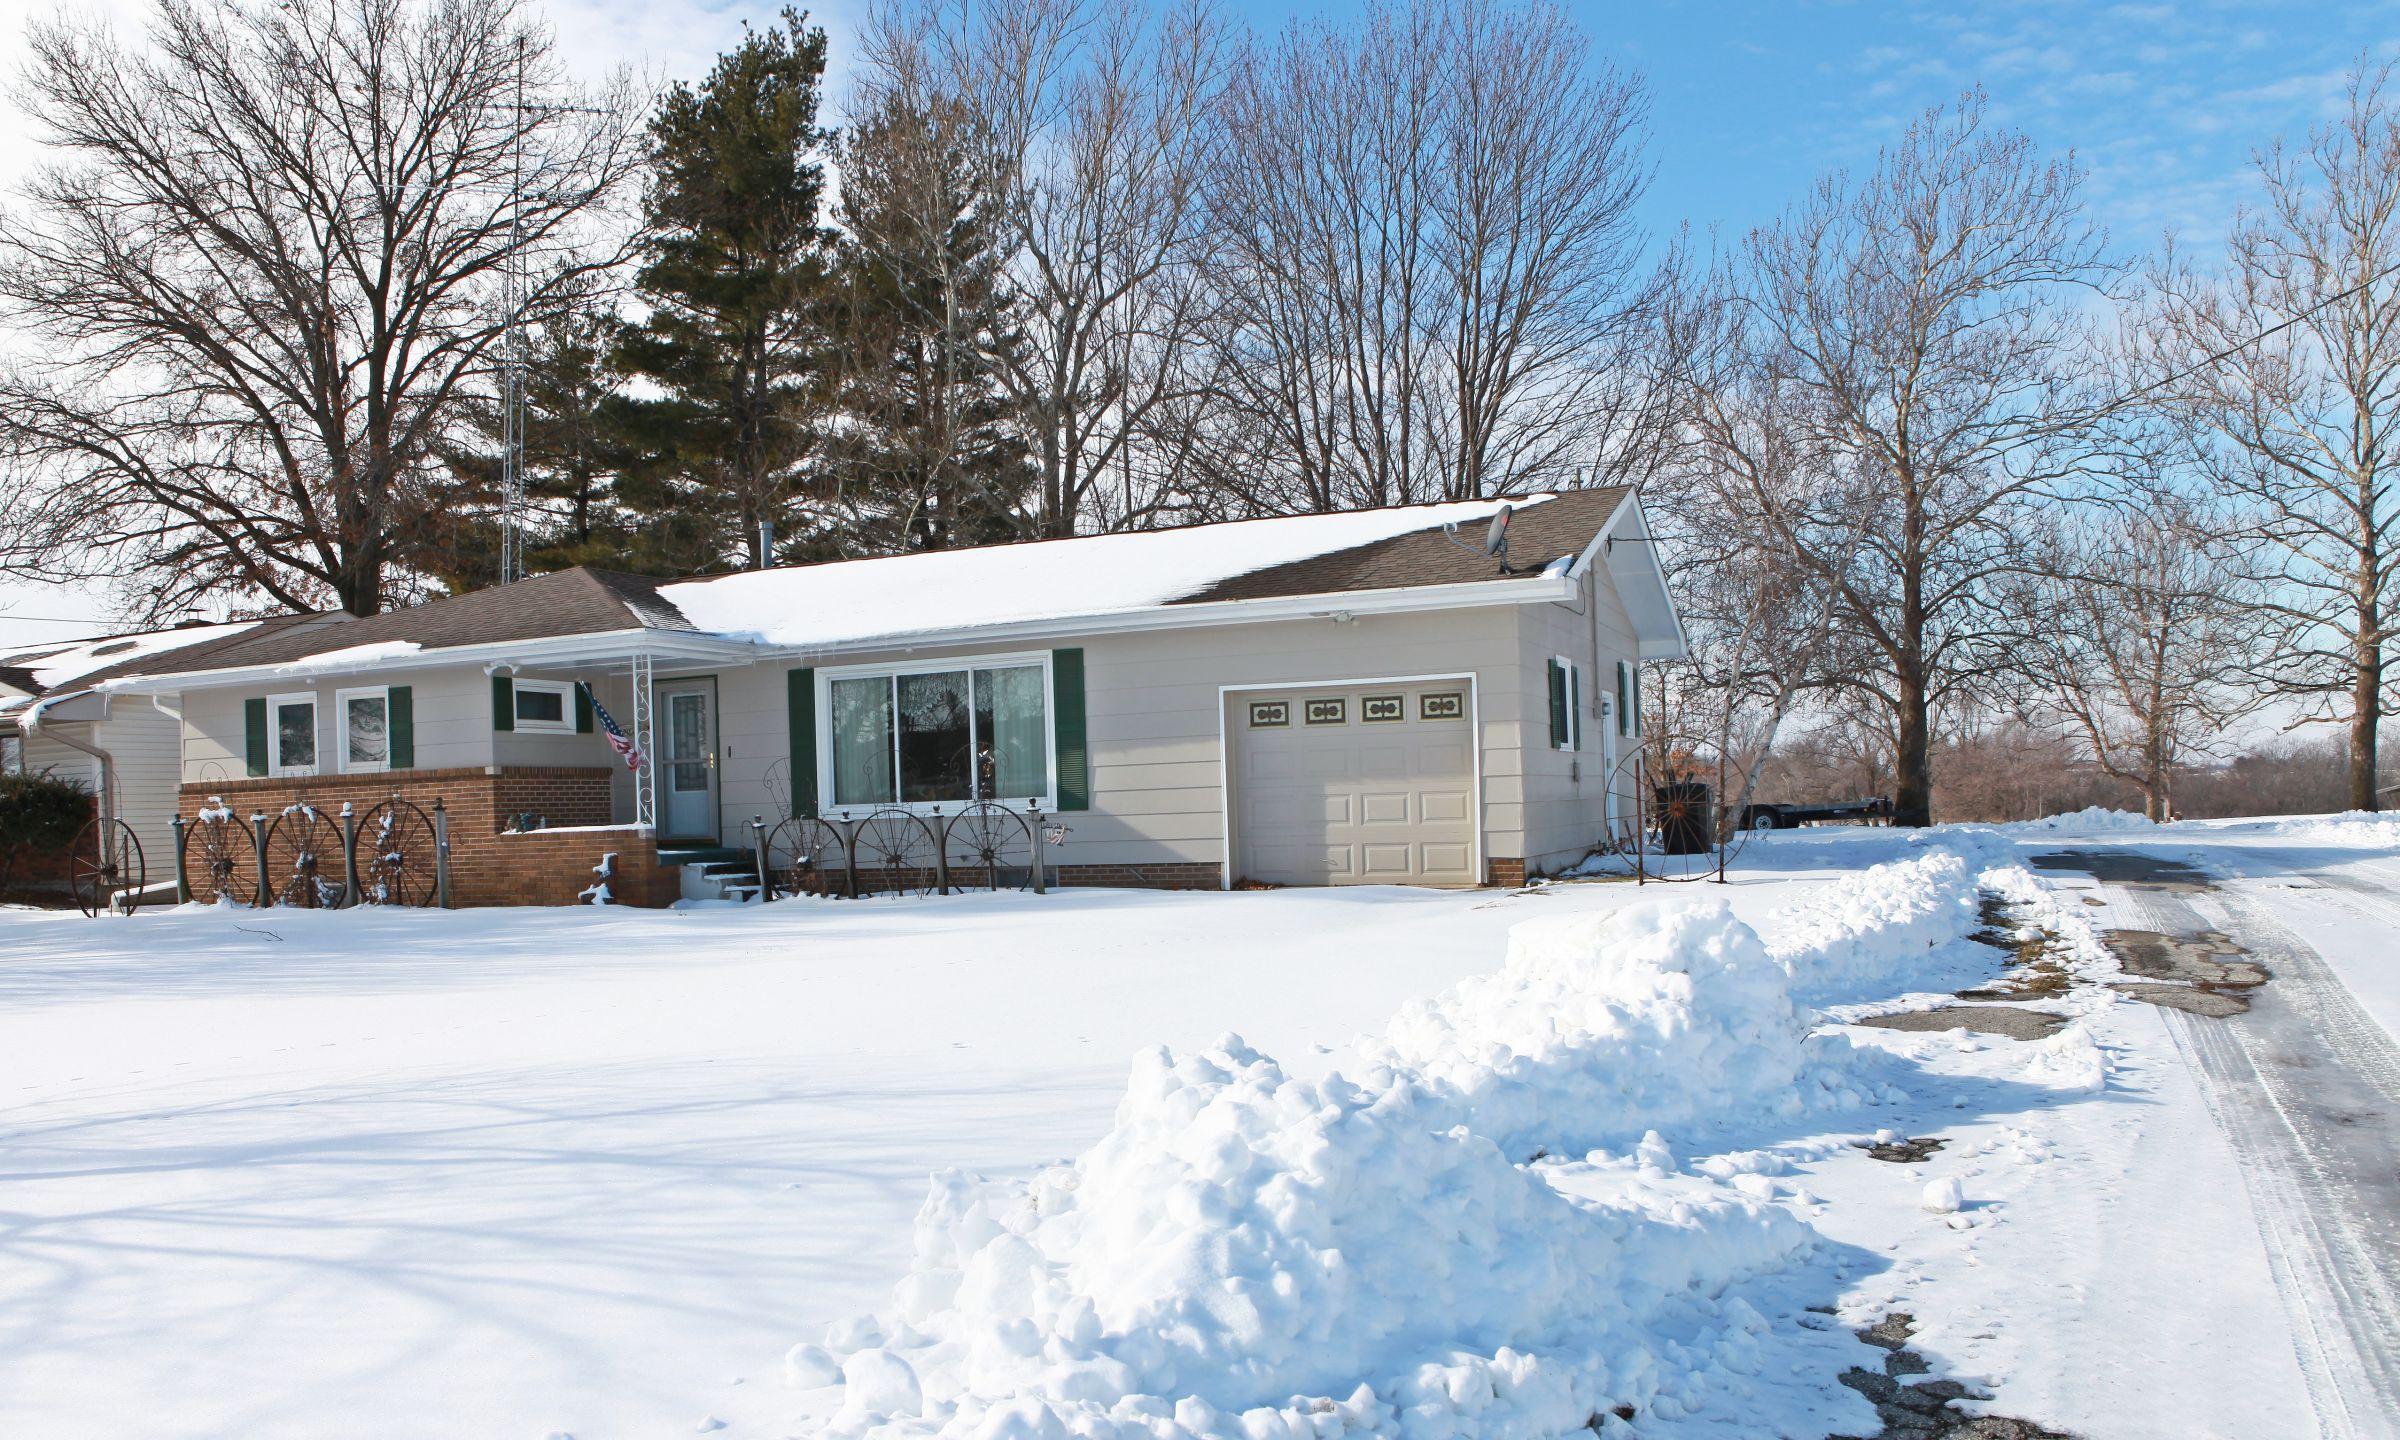 residential-lucas-county-iowa-0-acres-listing-number-15321-3-2021-01-18-210426.jpg